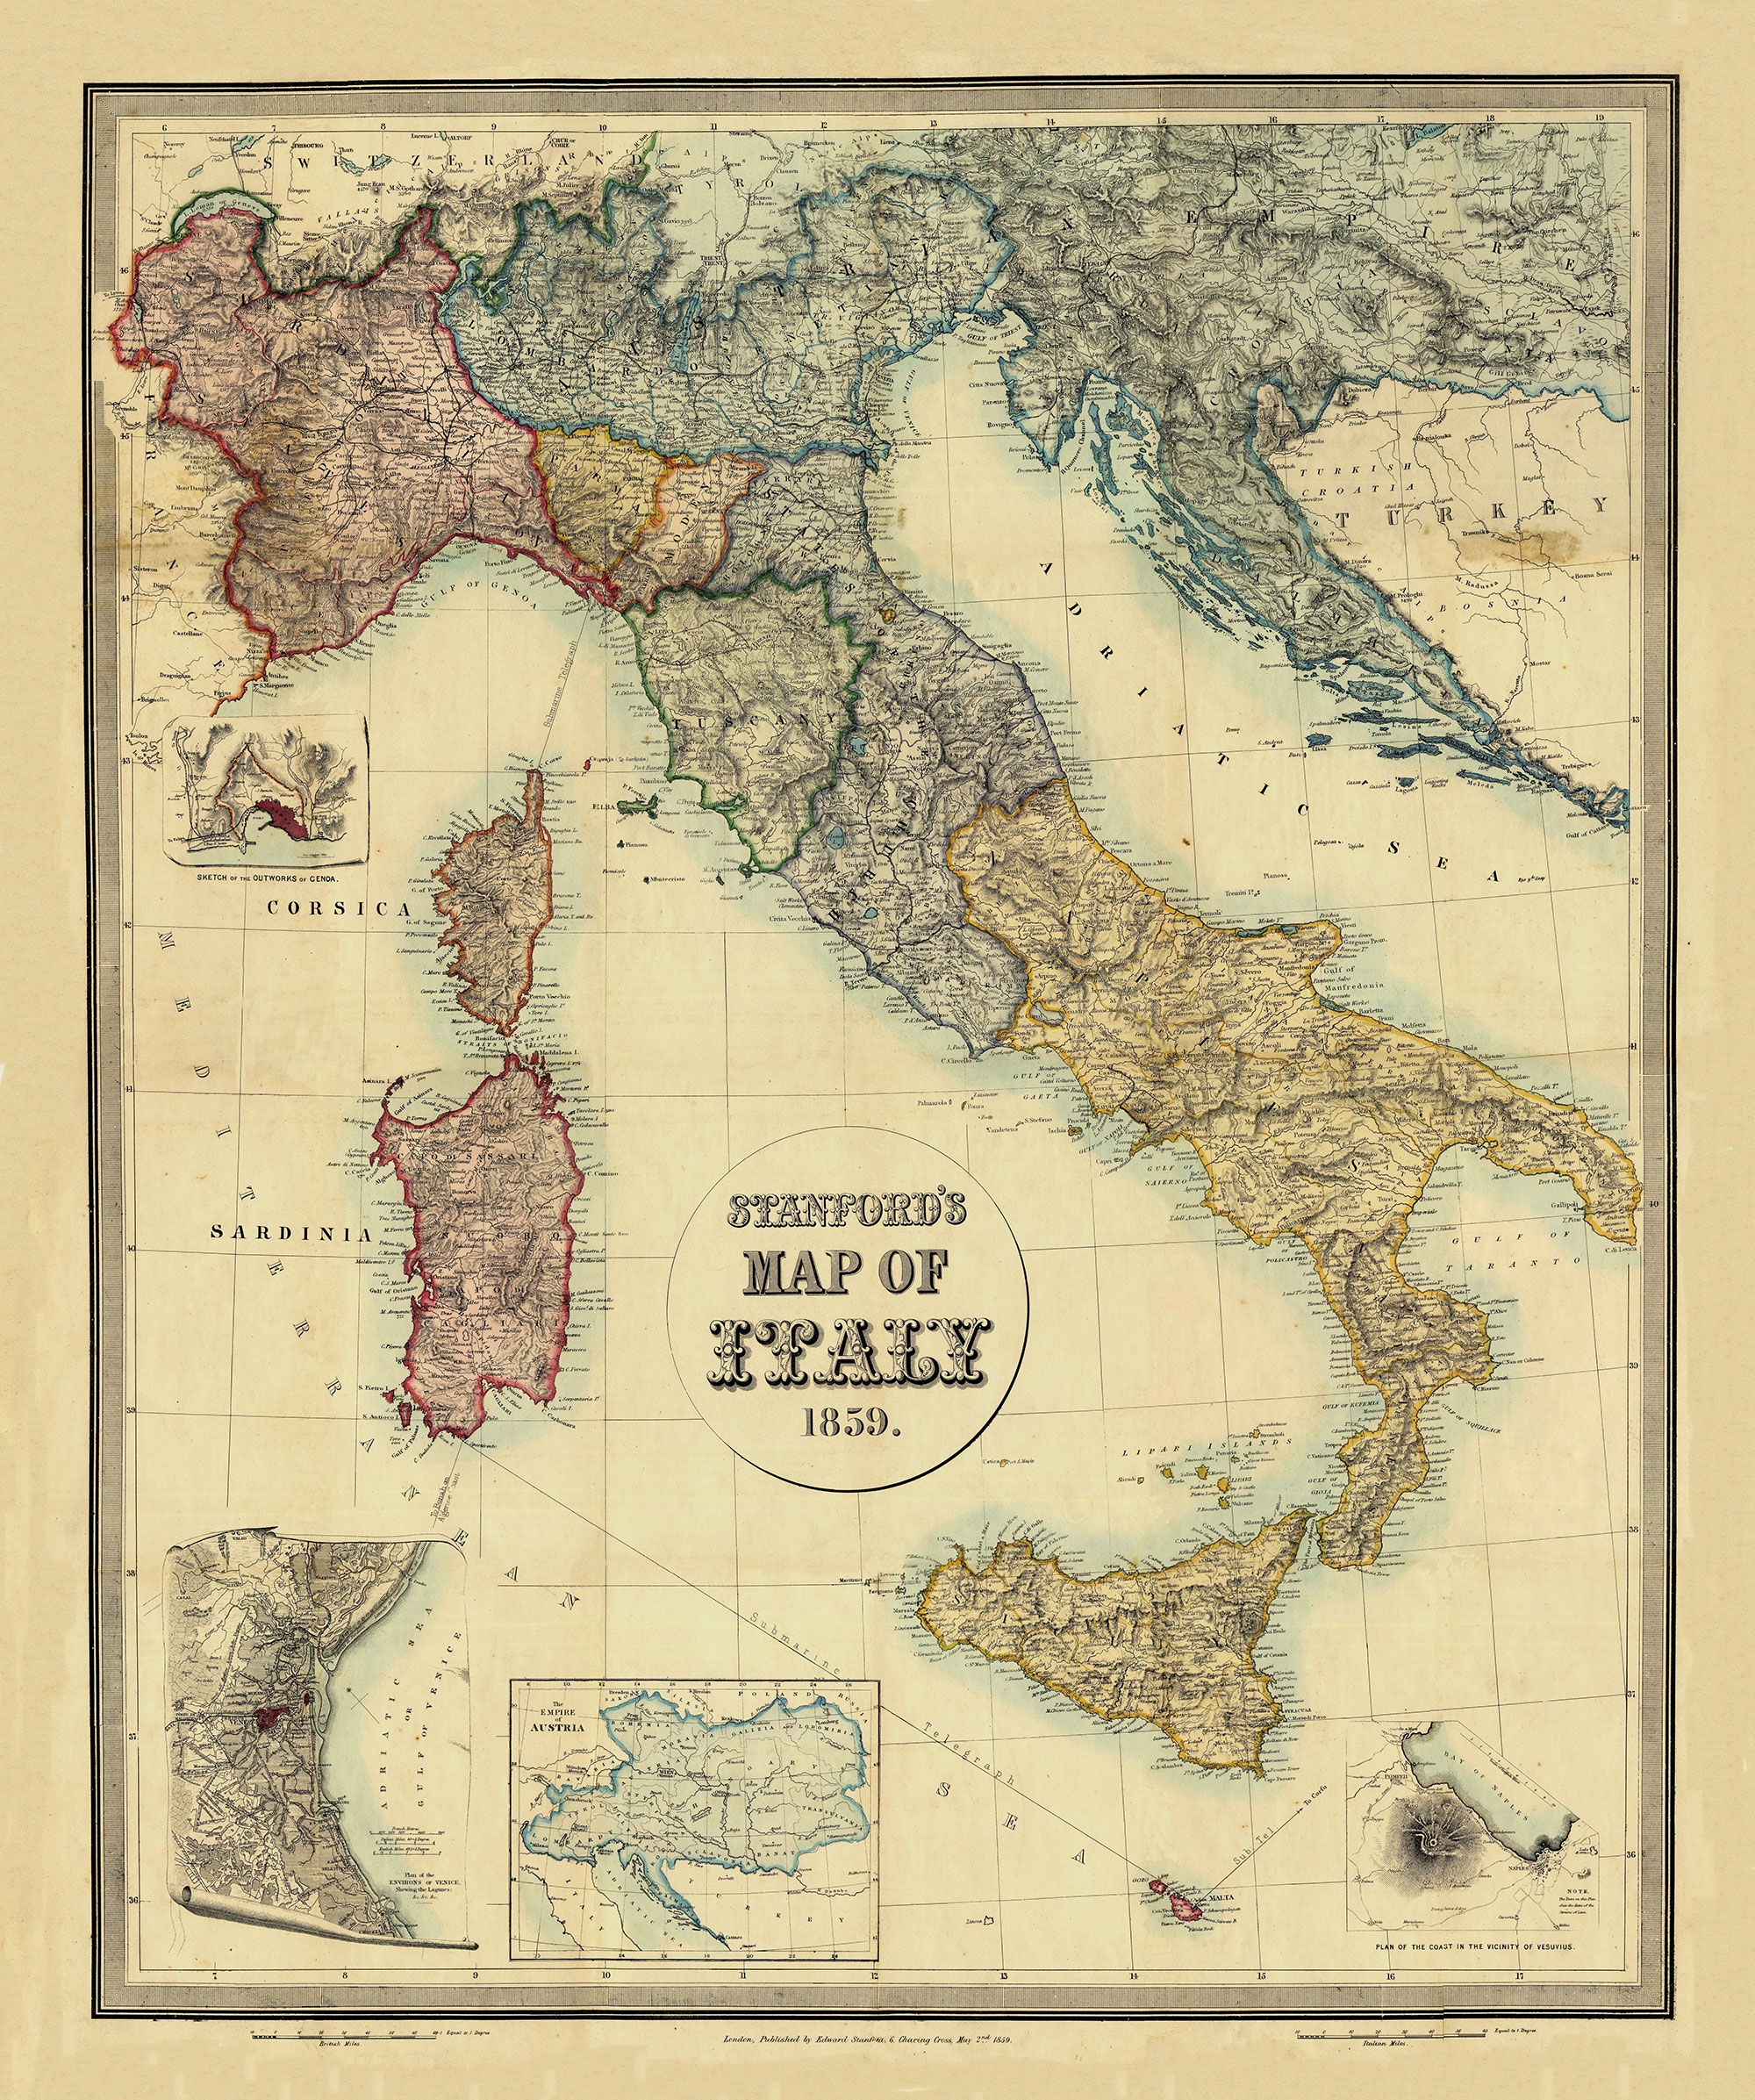 Italy On The Eve Of The Unification 1859 2000 2393 Mapporn